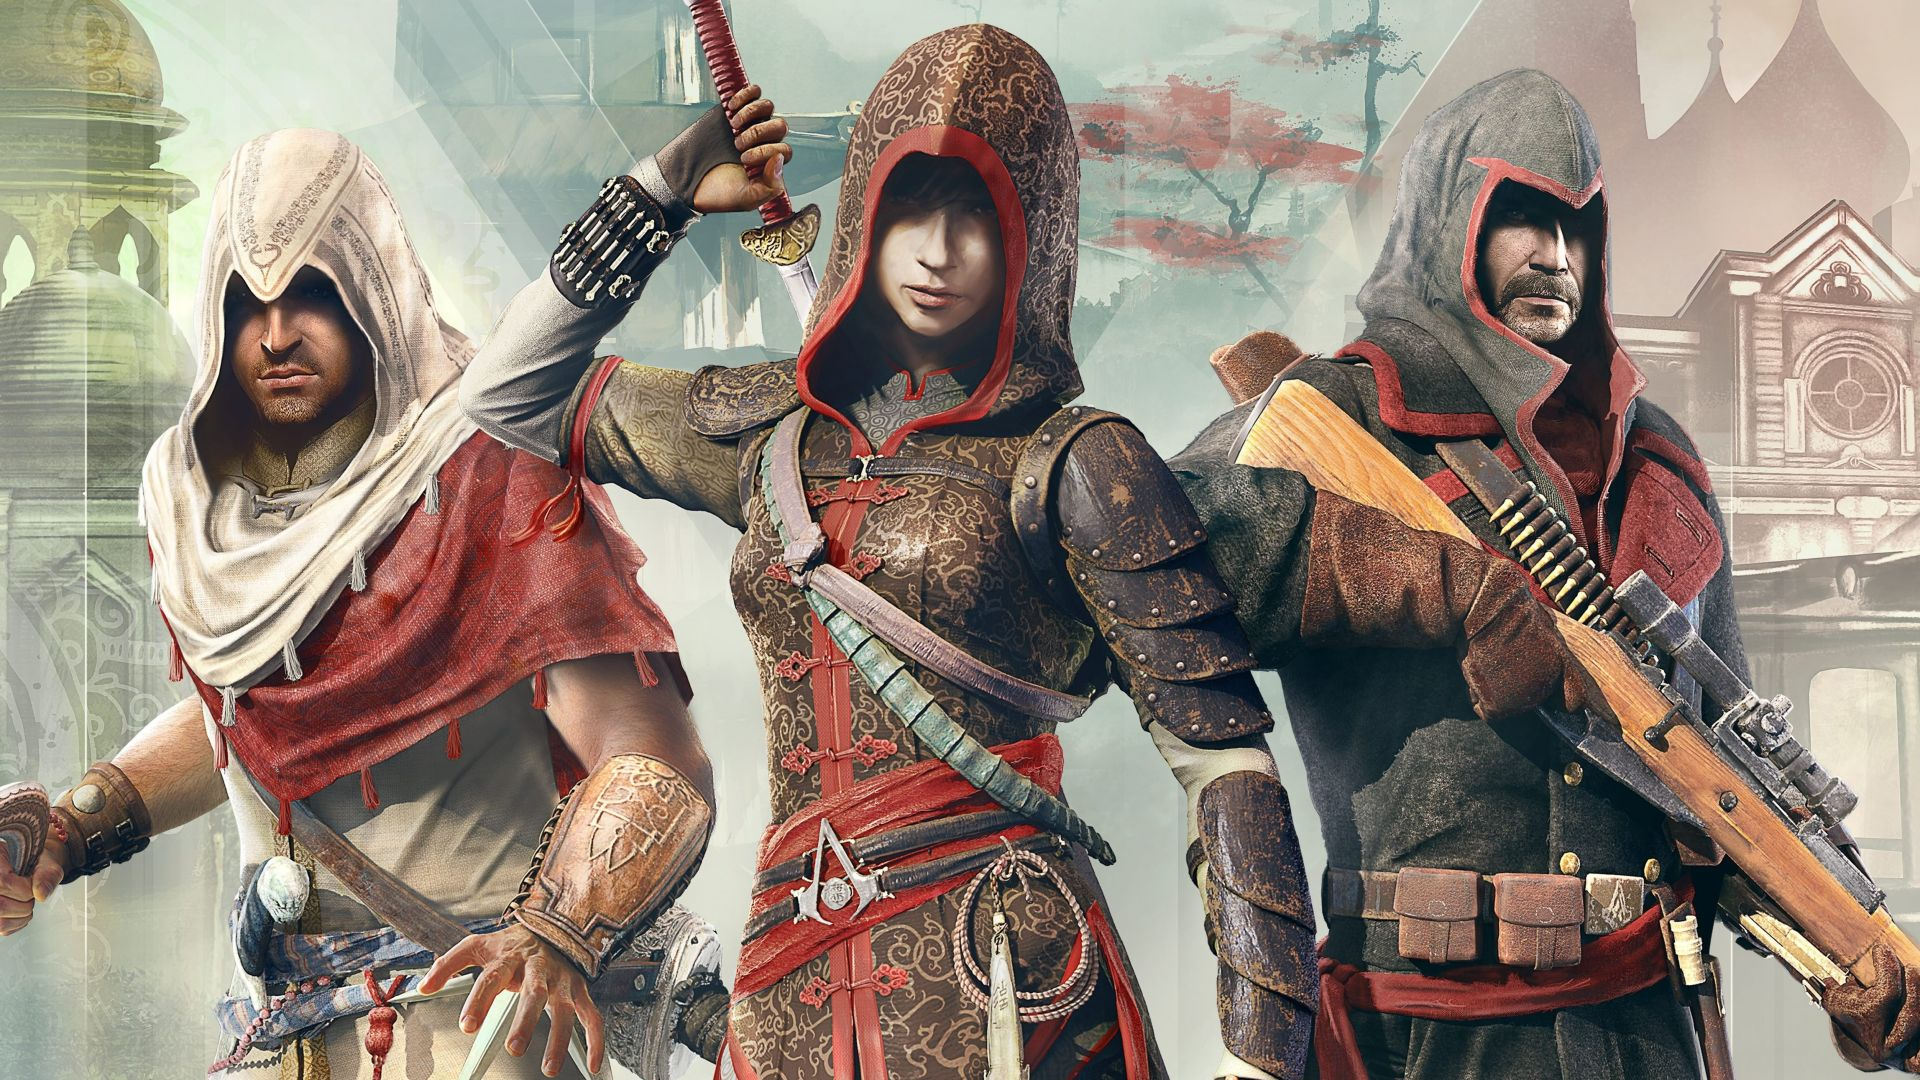 Assassin's Creed Chronicles Trilogy, Лучшие игры, игра, аркада, фантастика, Китай, ПК, PC, PS4, Xbox One, Assassin's Creed Chronicles Trilogy, Best Games, game, arcade, sci-fi, China, PC, PS4, Xbox One (horizontal)